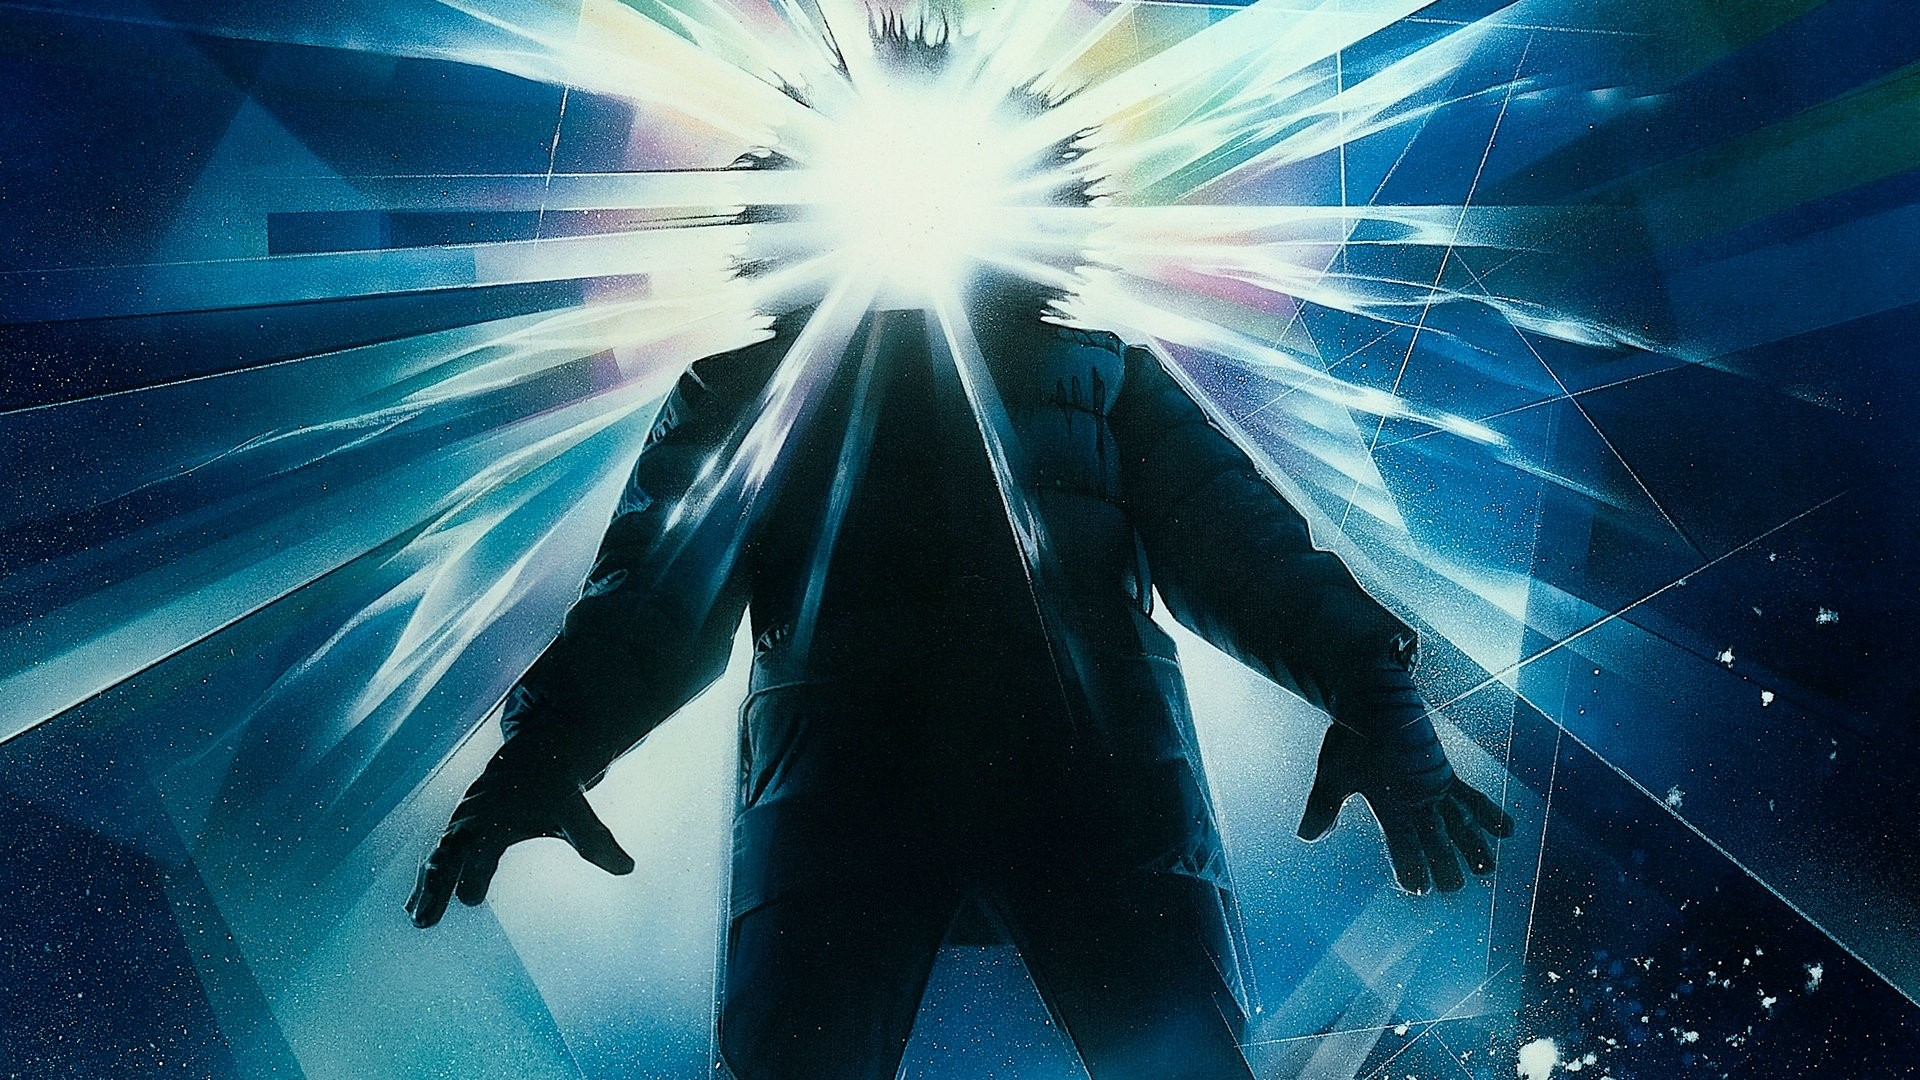 John Carpenter's 'The Thing' Turns 35 Today! - Bloody ...